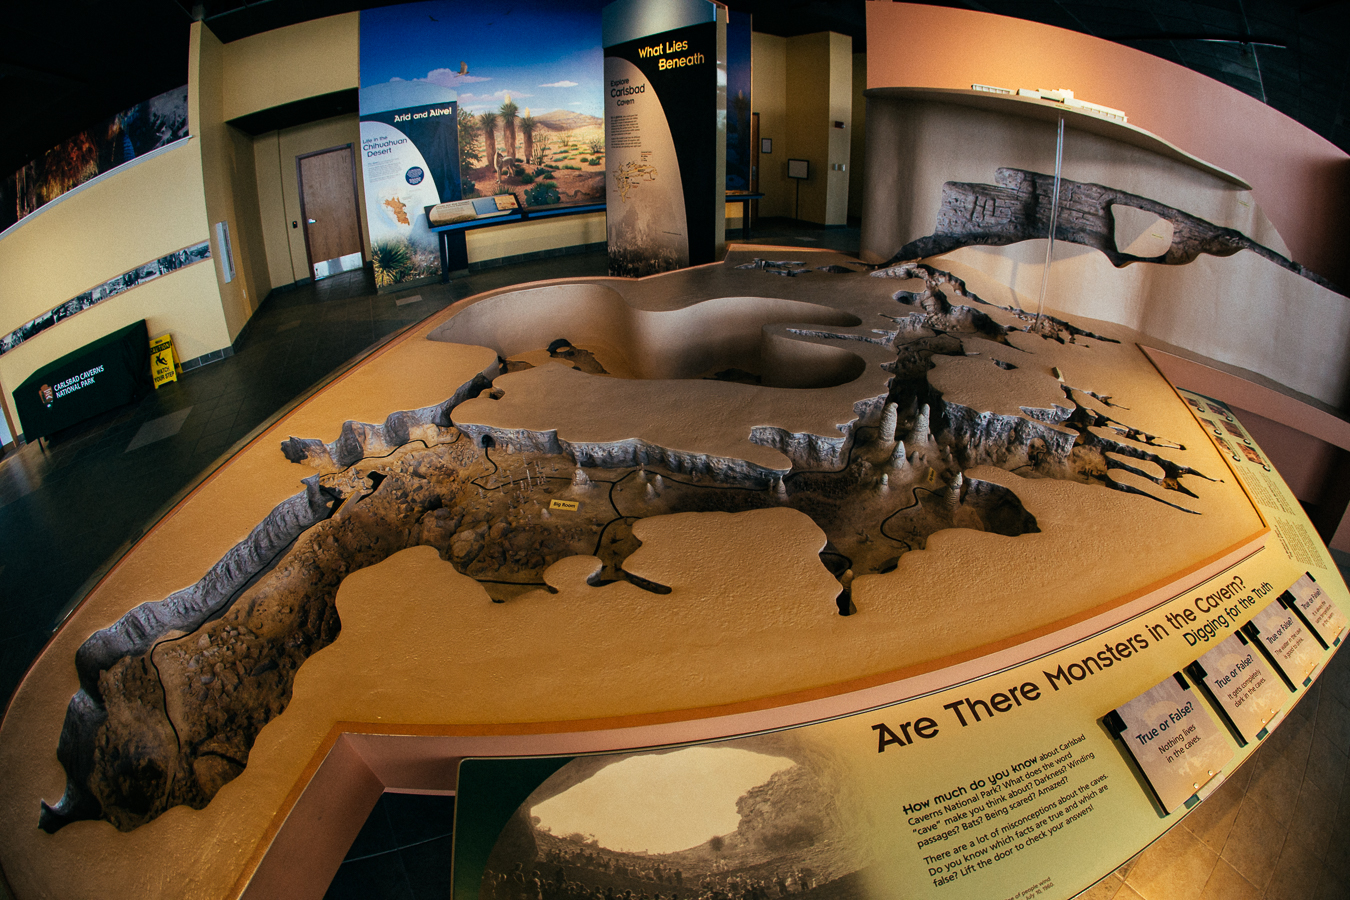 1st stop, the massive Carlsbad Caverns. This model shows the entrance on the far far right descending into the cave. I didn't take the elevator and hiked back out, which was about3ish miles round-tripall underground.